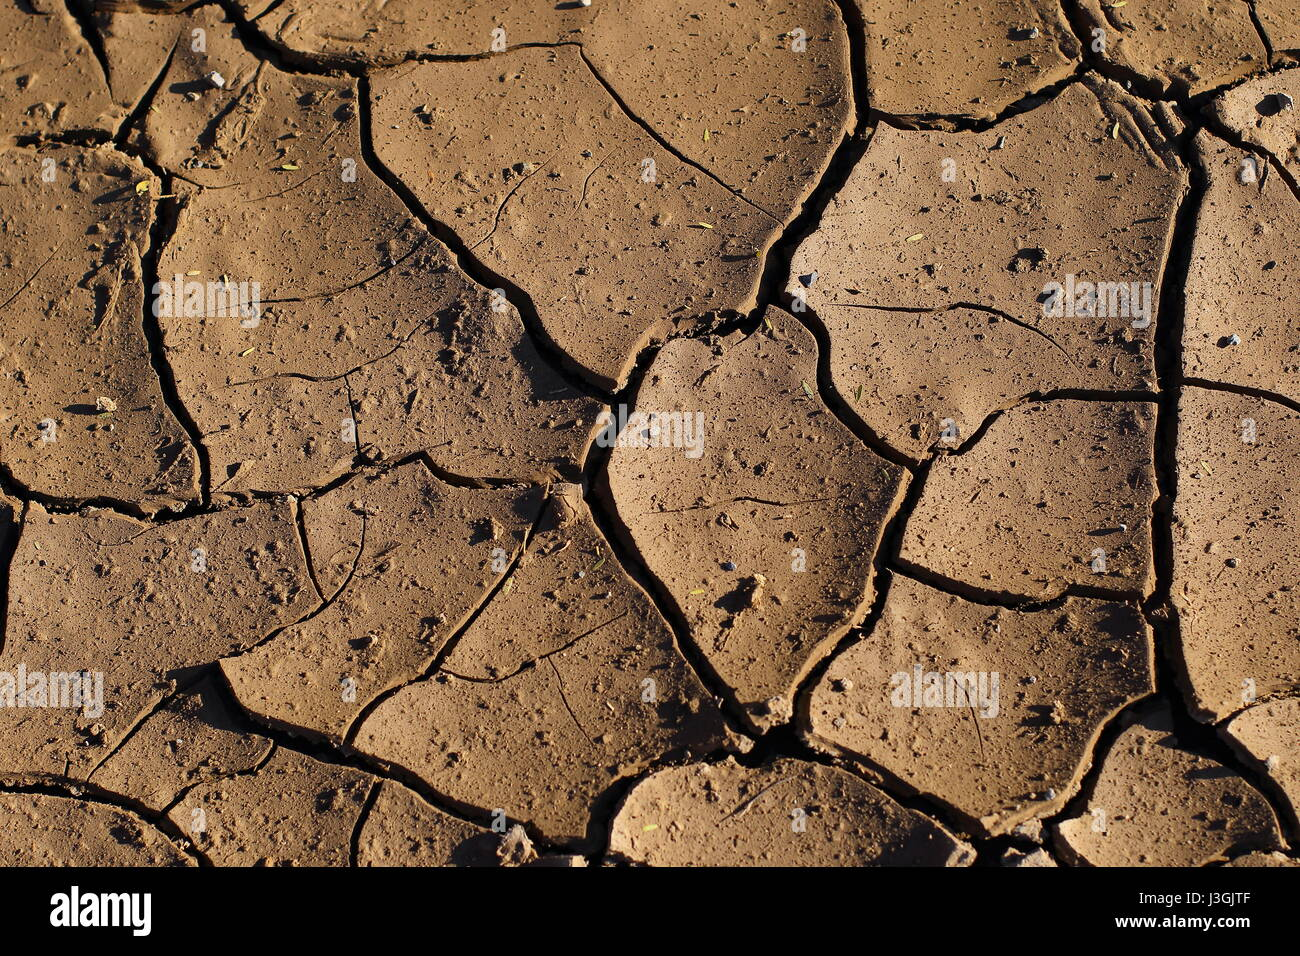 Wet surface soil dry and crack with the heat of the sun making mud stock photo wet surface soil dry and crack with the heat of the sun making mud flakes sciox Images